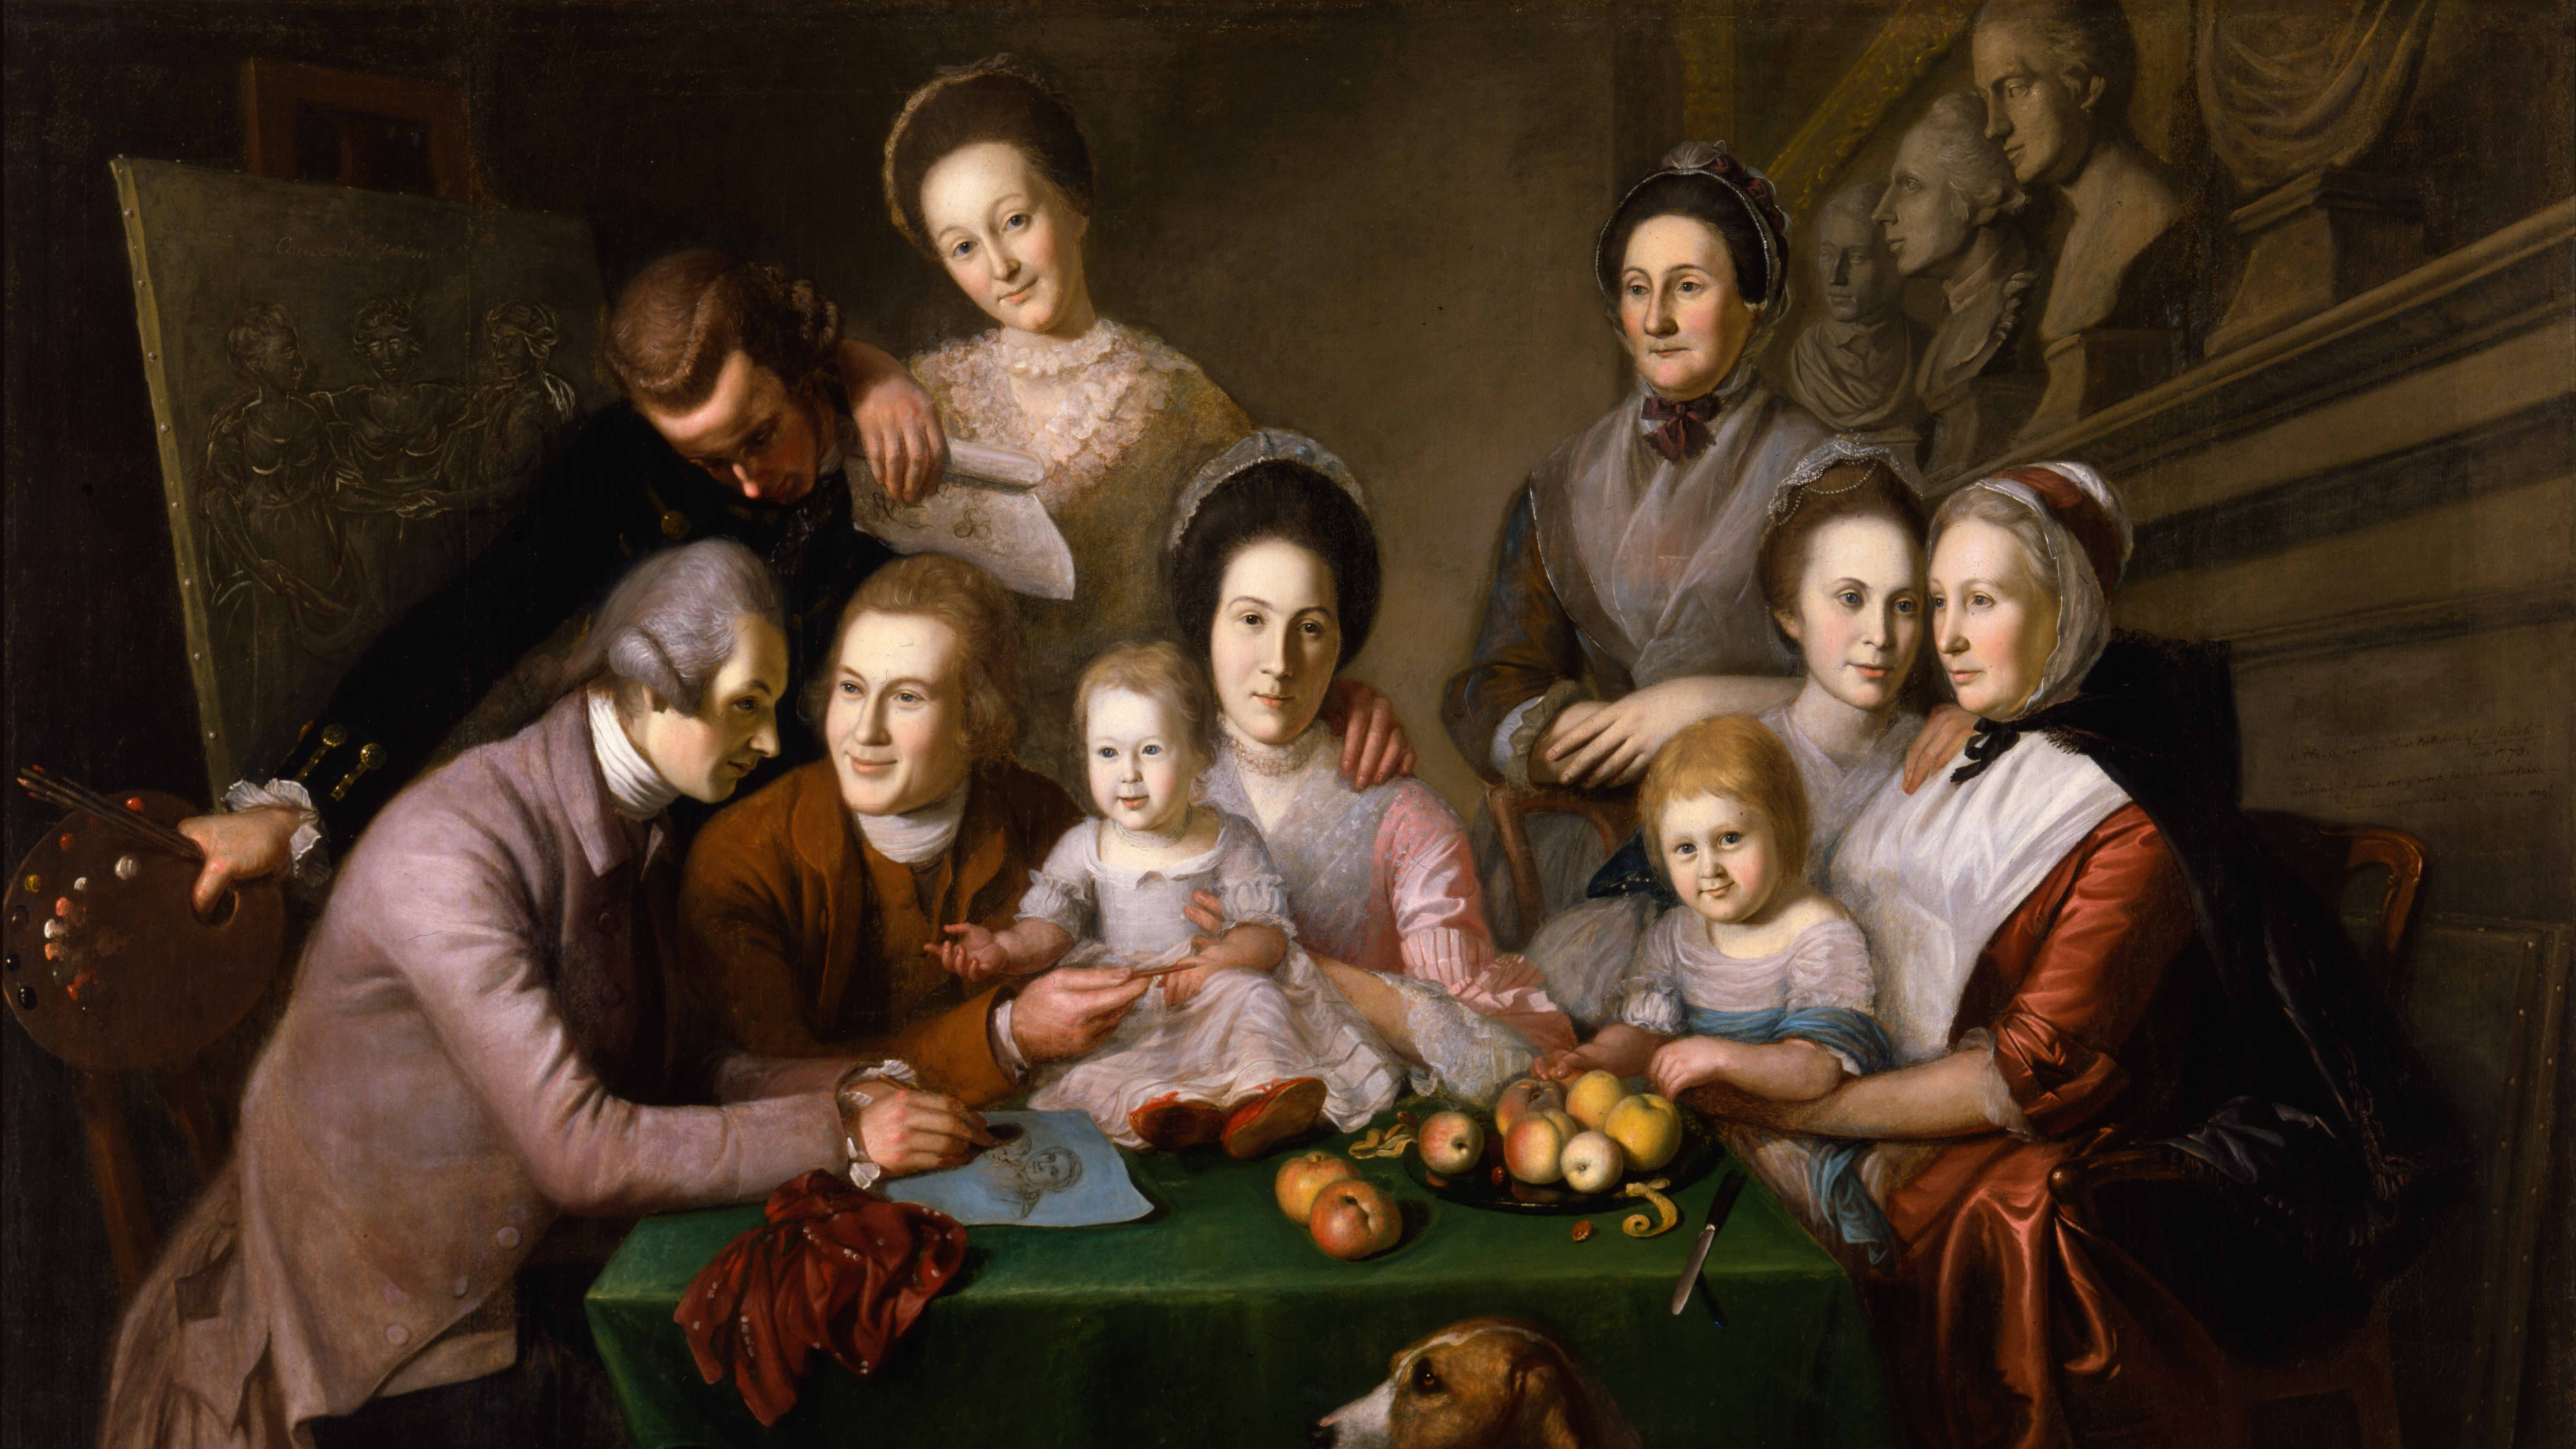 Painting of The Peale Family by Charles Willson Peale.